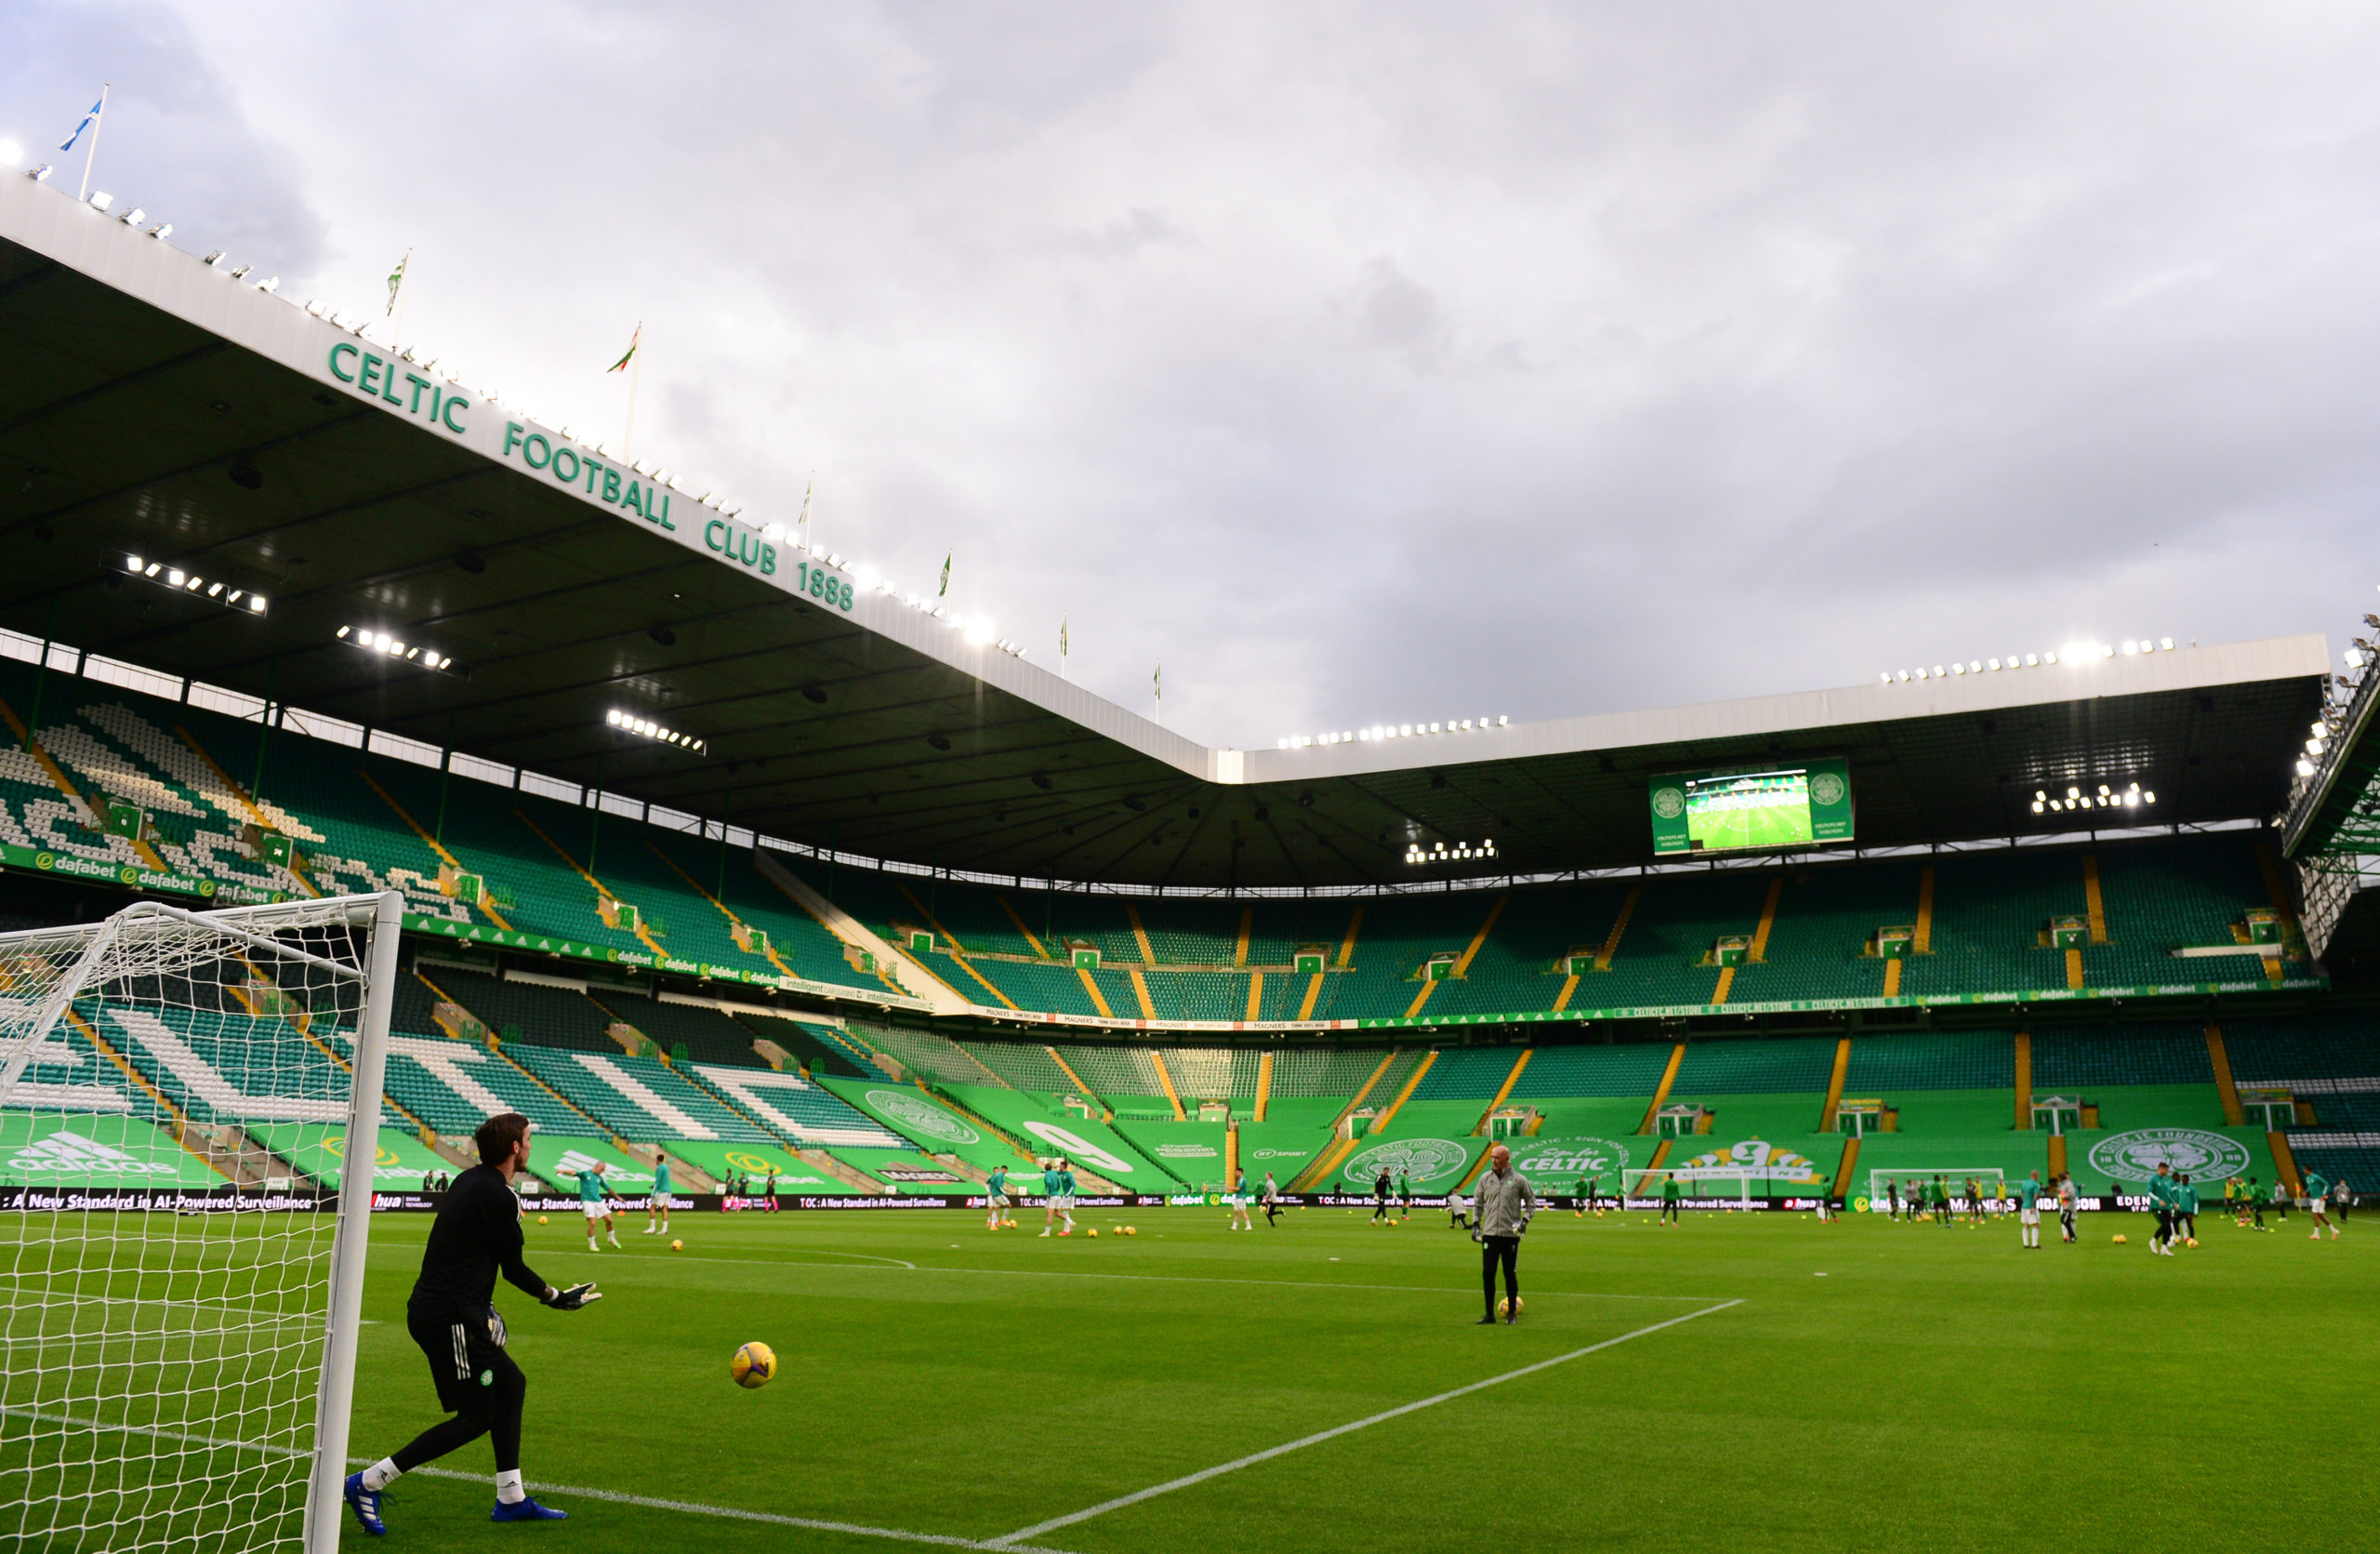 Celtic Park will be empty again on Sunday